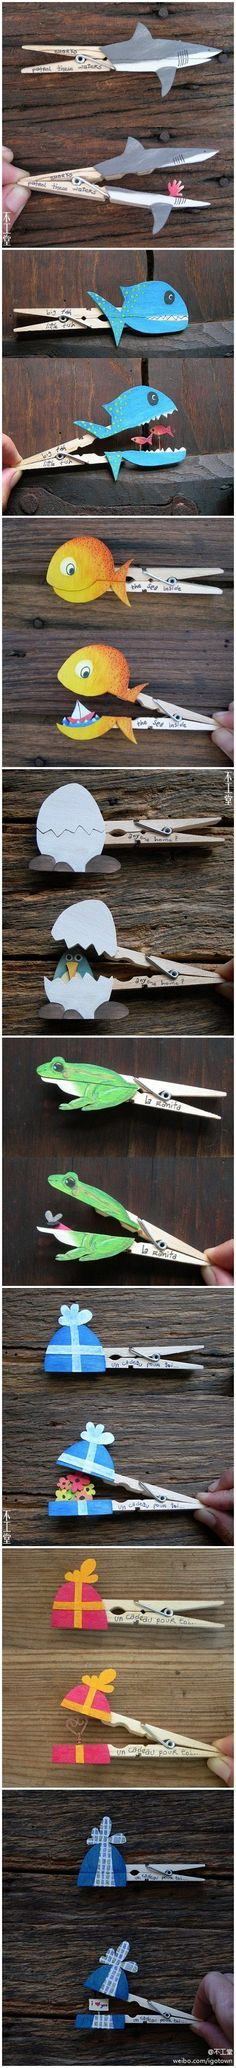 These are just too much! I'm making PacMan clothespins and putting little ghosts inside them.